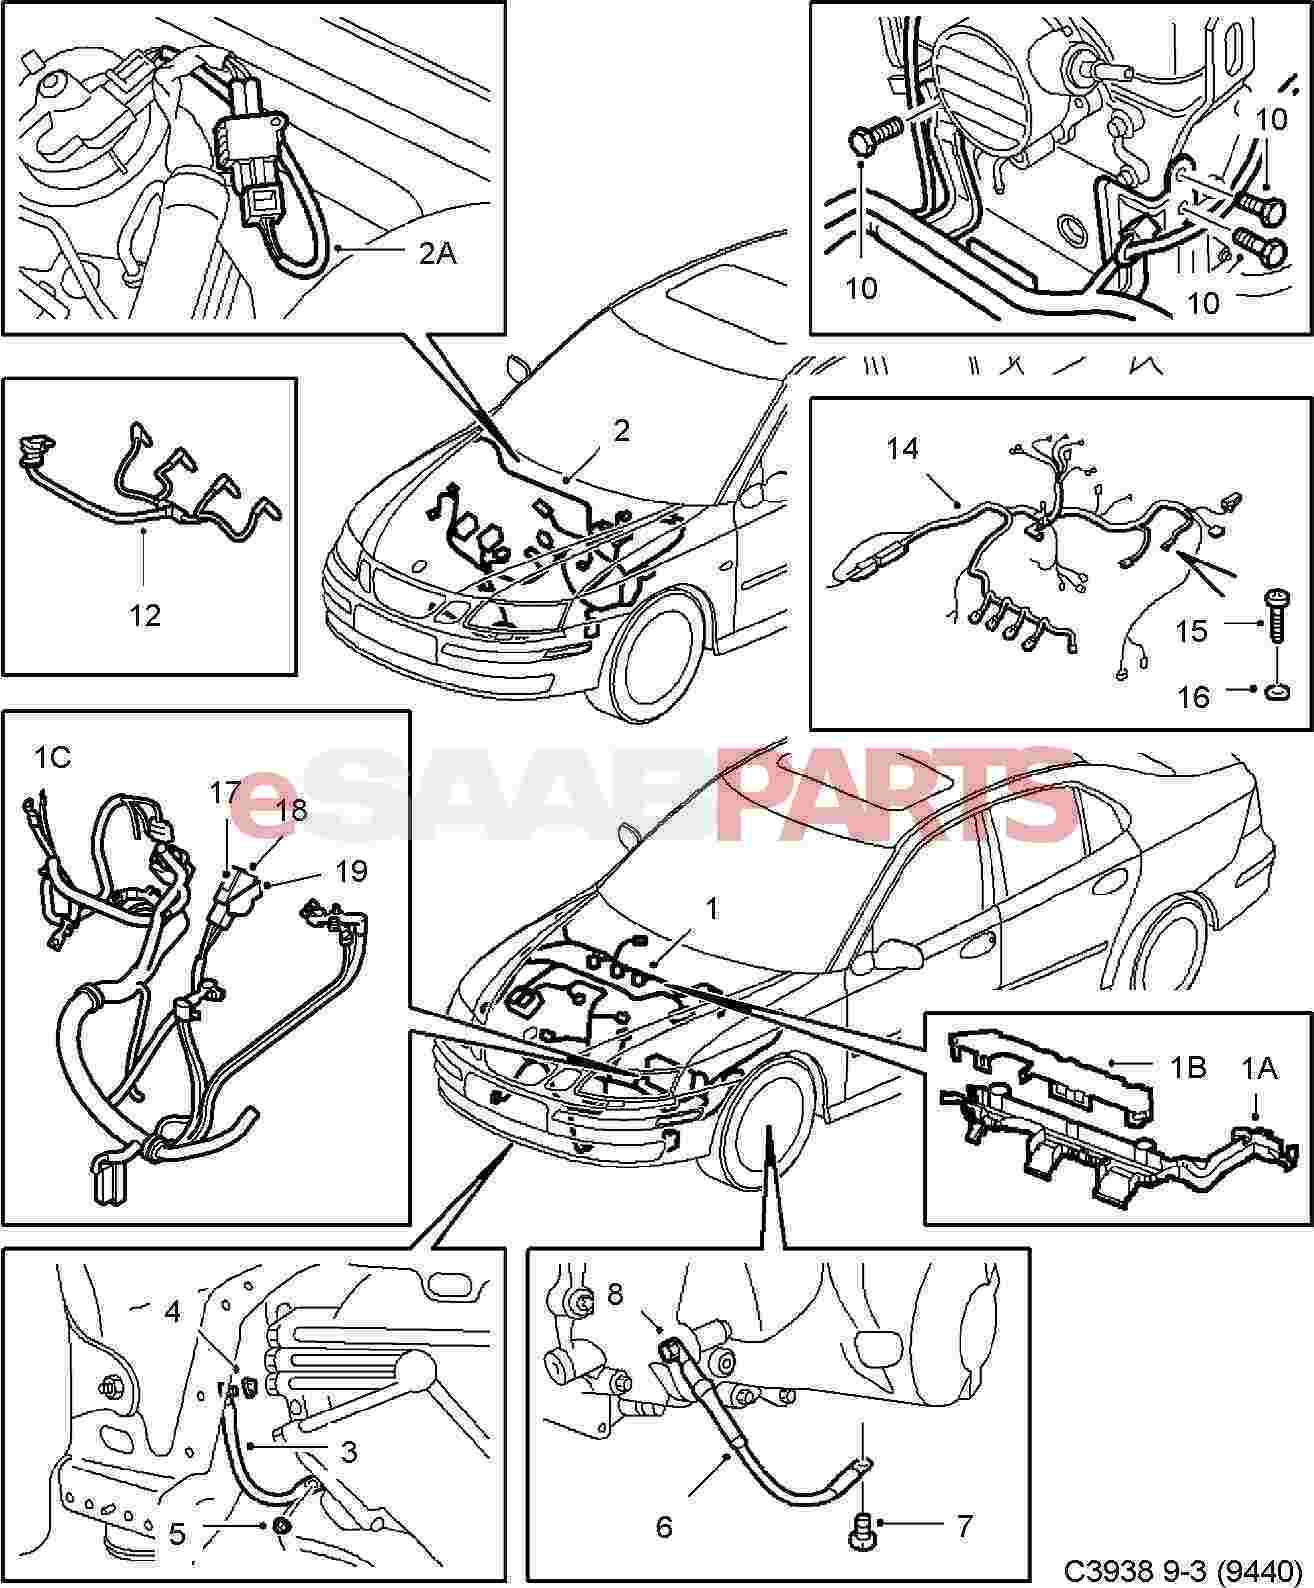 Saab 9 3 Wiring Harness Experts Of Diagram Car Stereo Radio Adapter Iso Loom Esaabparts Com 9440 U003e Electrical Parts Rh Trailer 2002